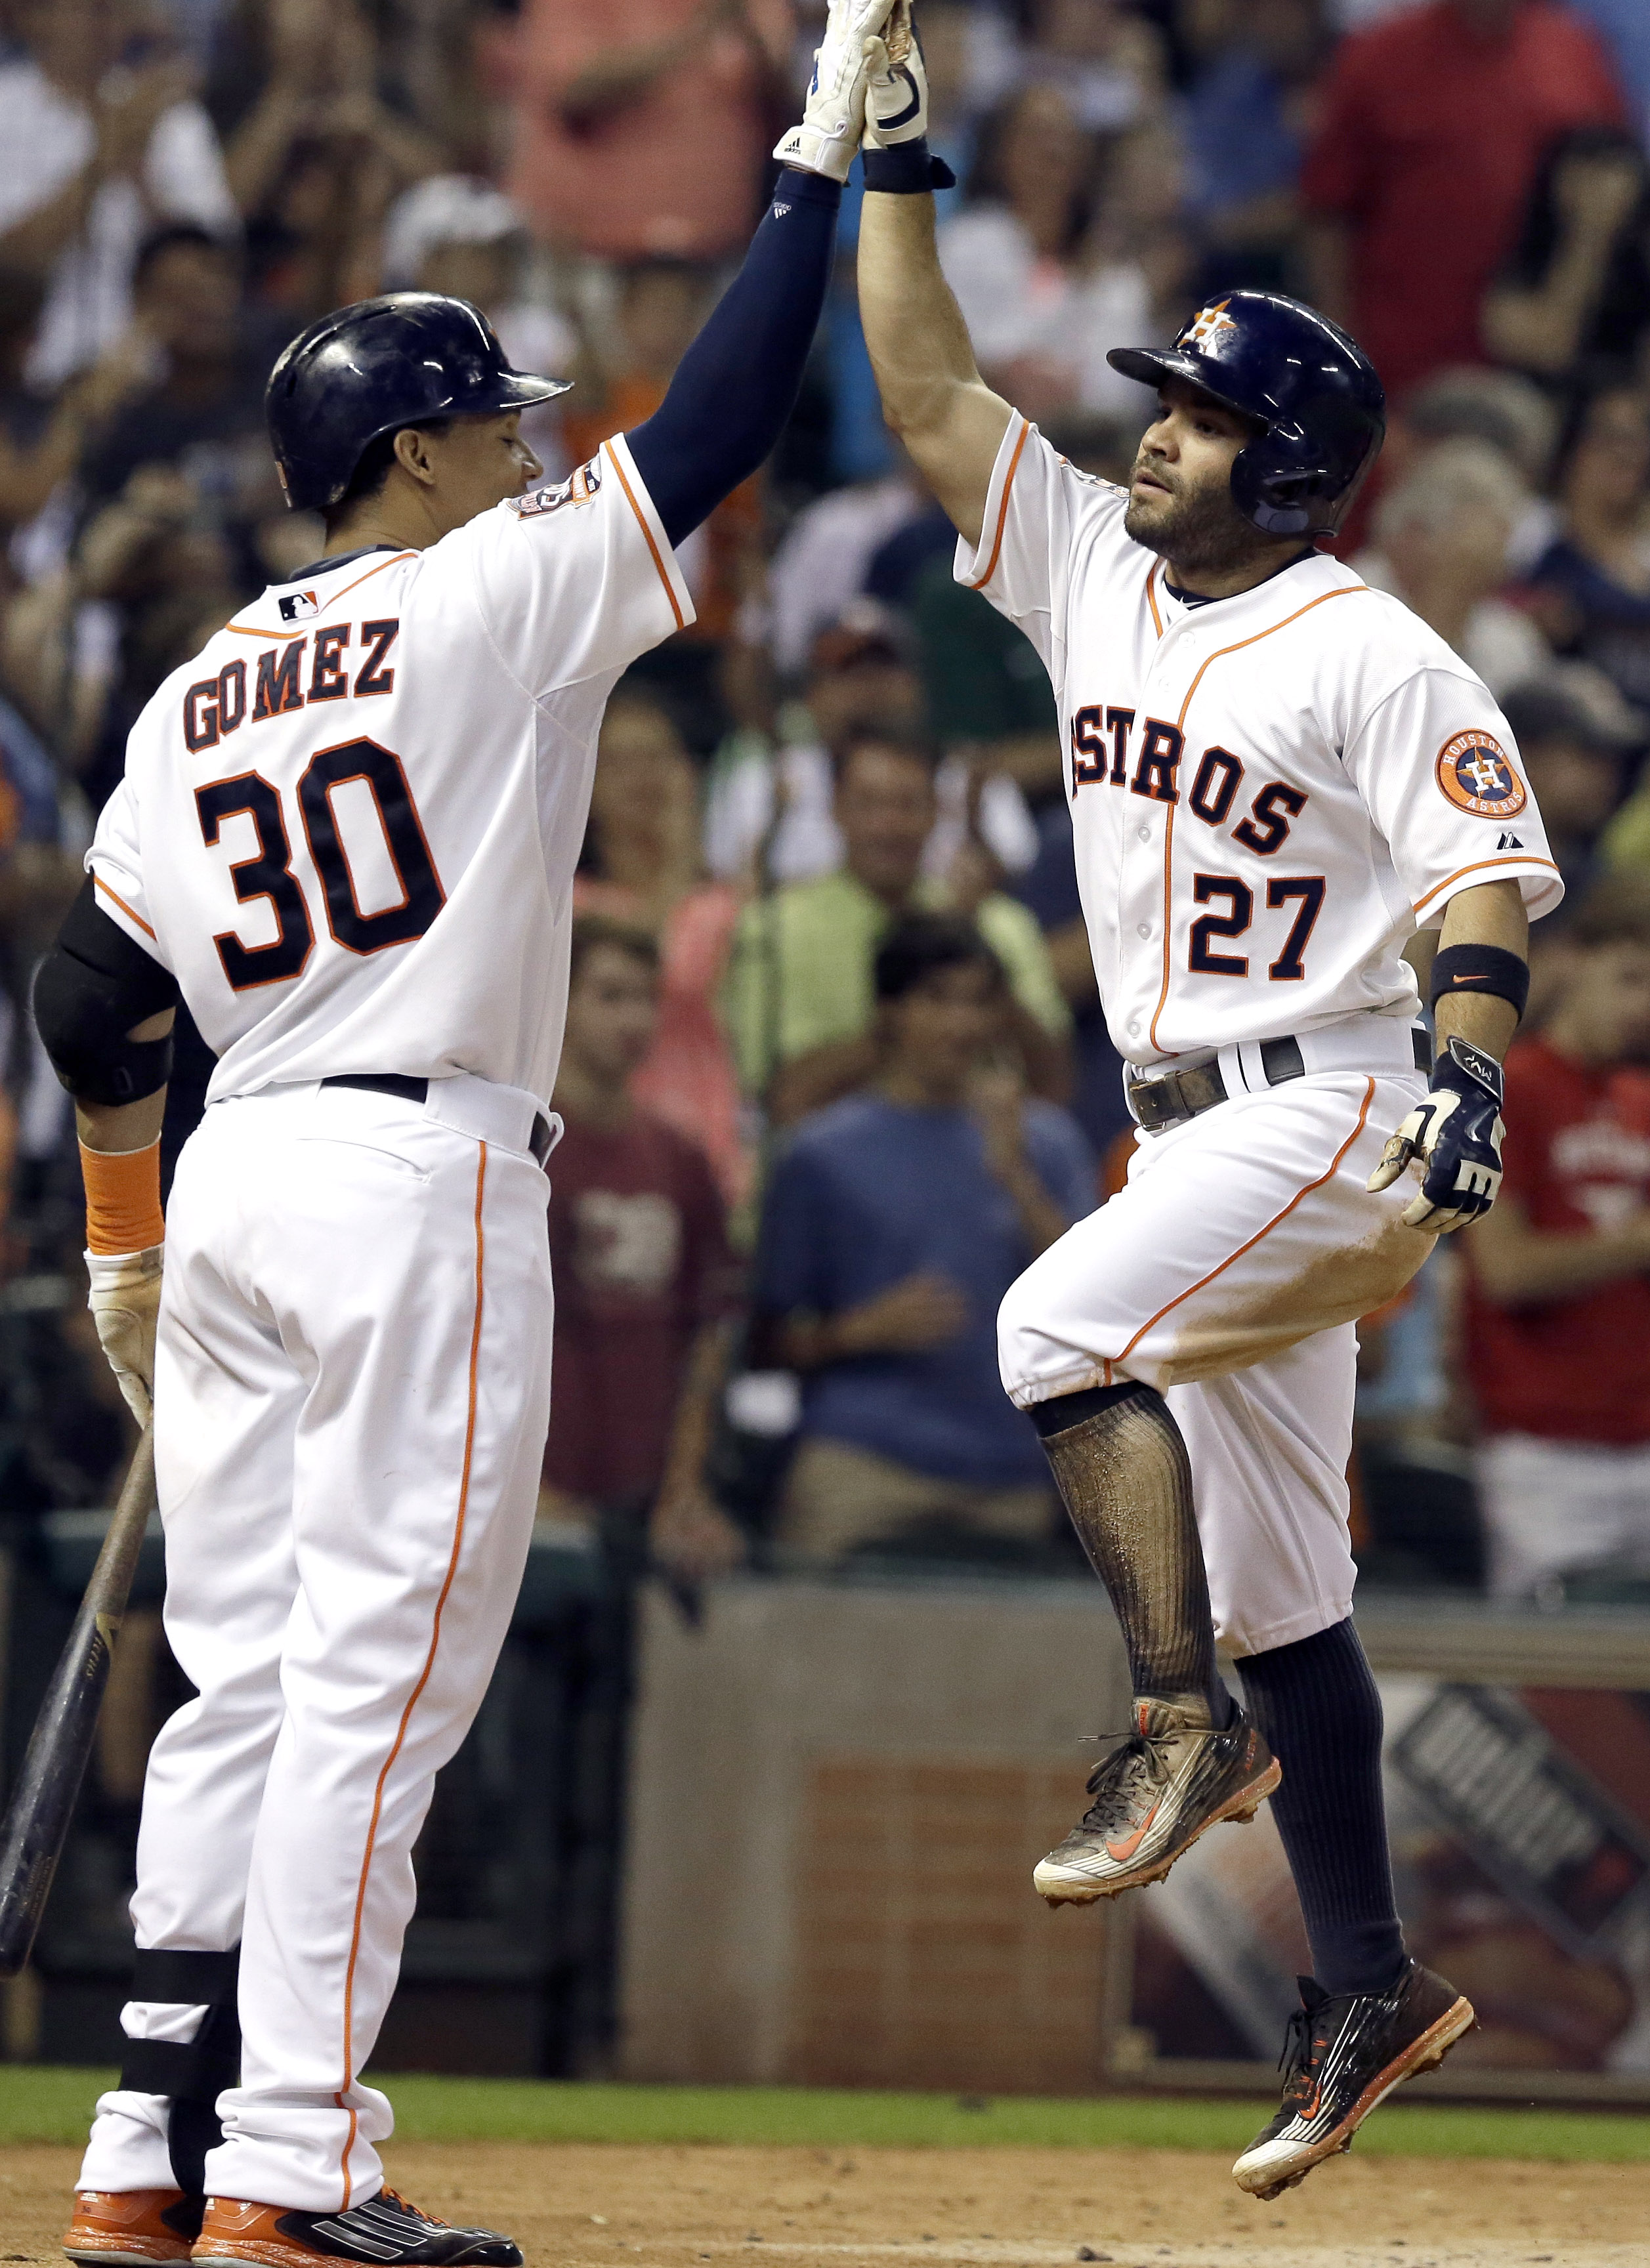 Houston Astros' Carlos Gomez (30) high-fives Jose Altuve (27) after Altuve's solo home run against the Los Angeles Dodgers during the sixth inning of a baseball game Saturday, Aug. 22, 2015, in Houston. (AP Photo/Pat Sullivan)